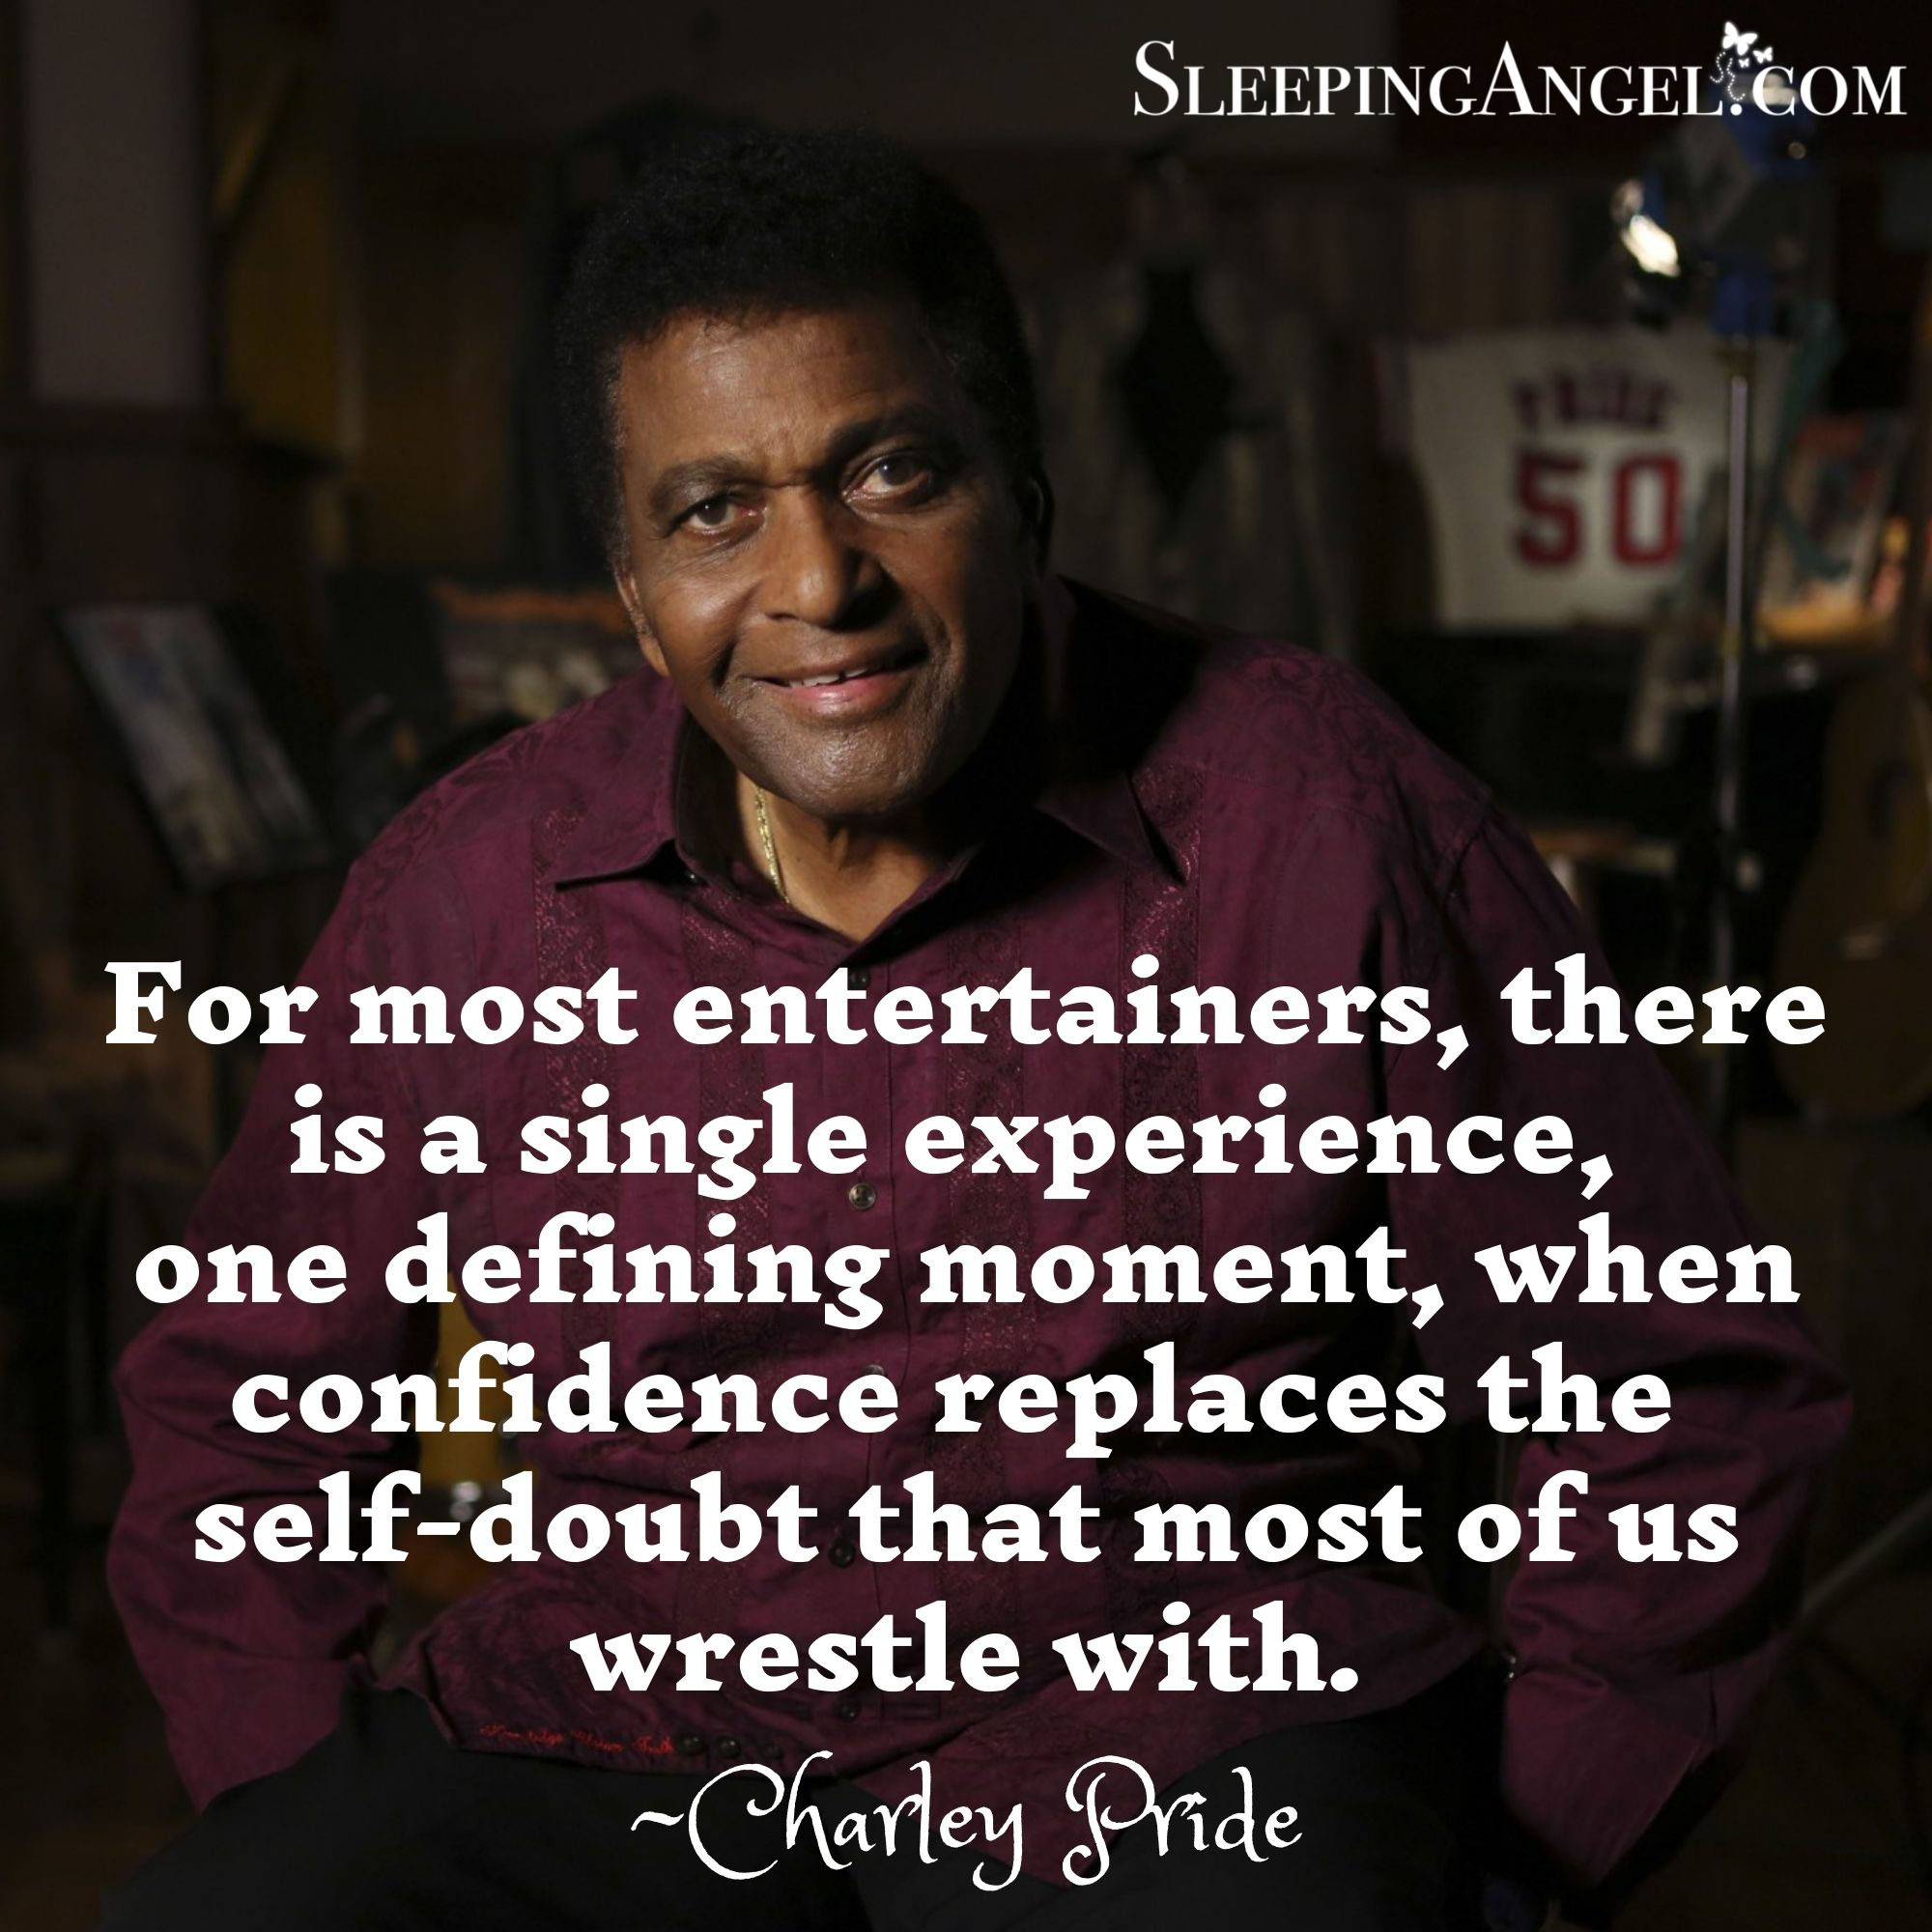 Charley Pride Quote